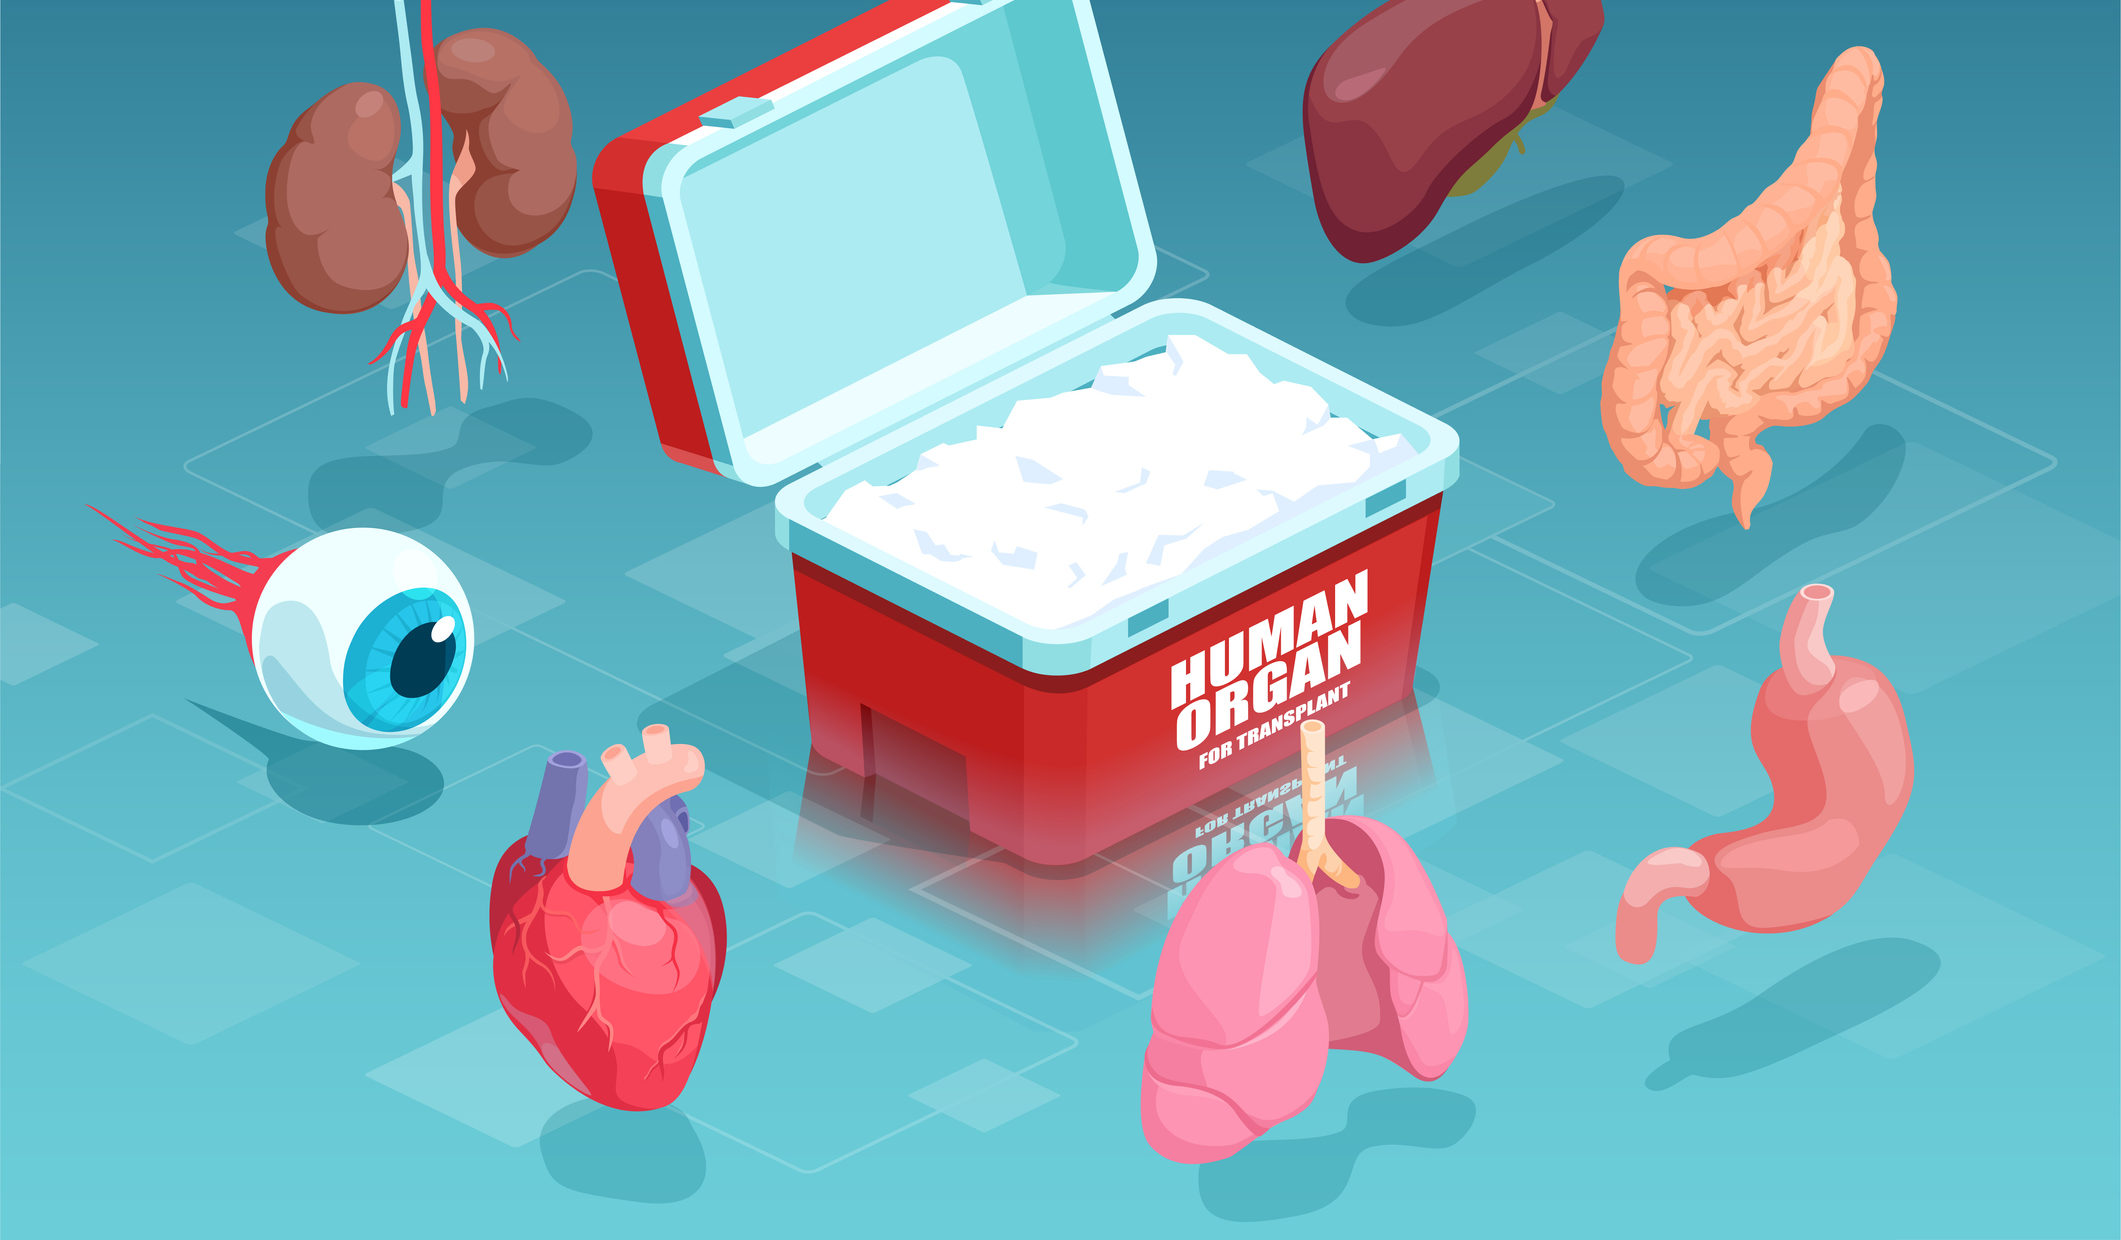 Transplant Diagnostics Market Emerging Trends, Technological Advancements, Future Growth, Application Potential by 2031